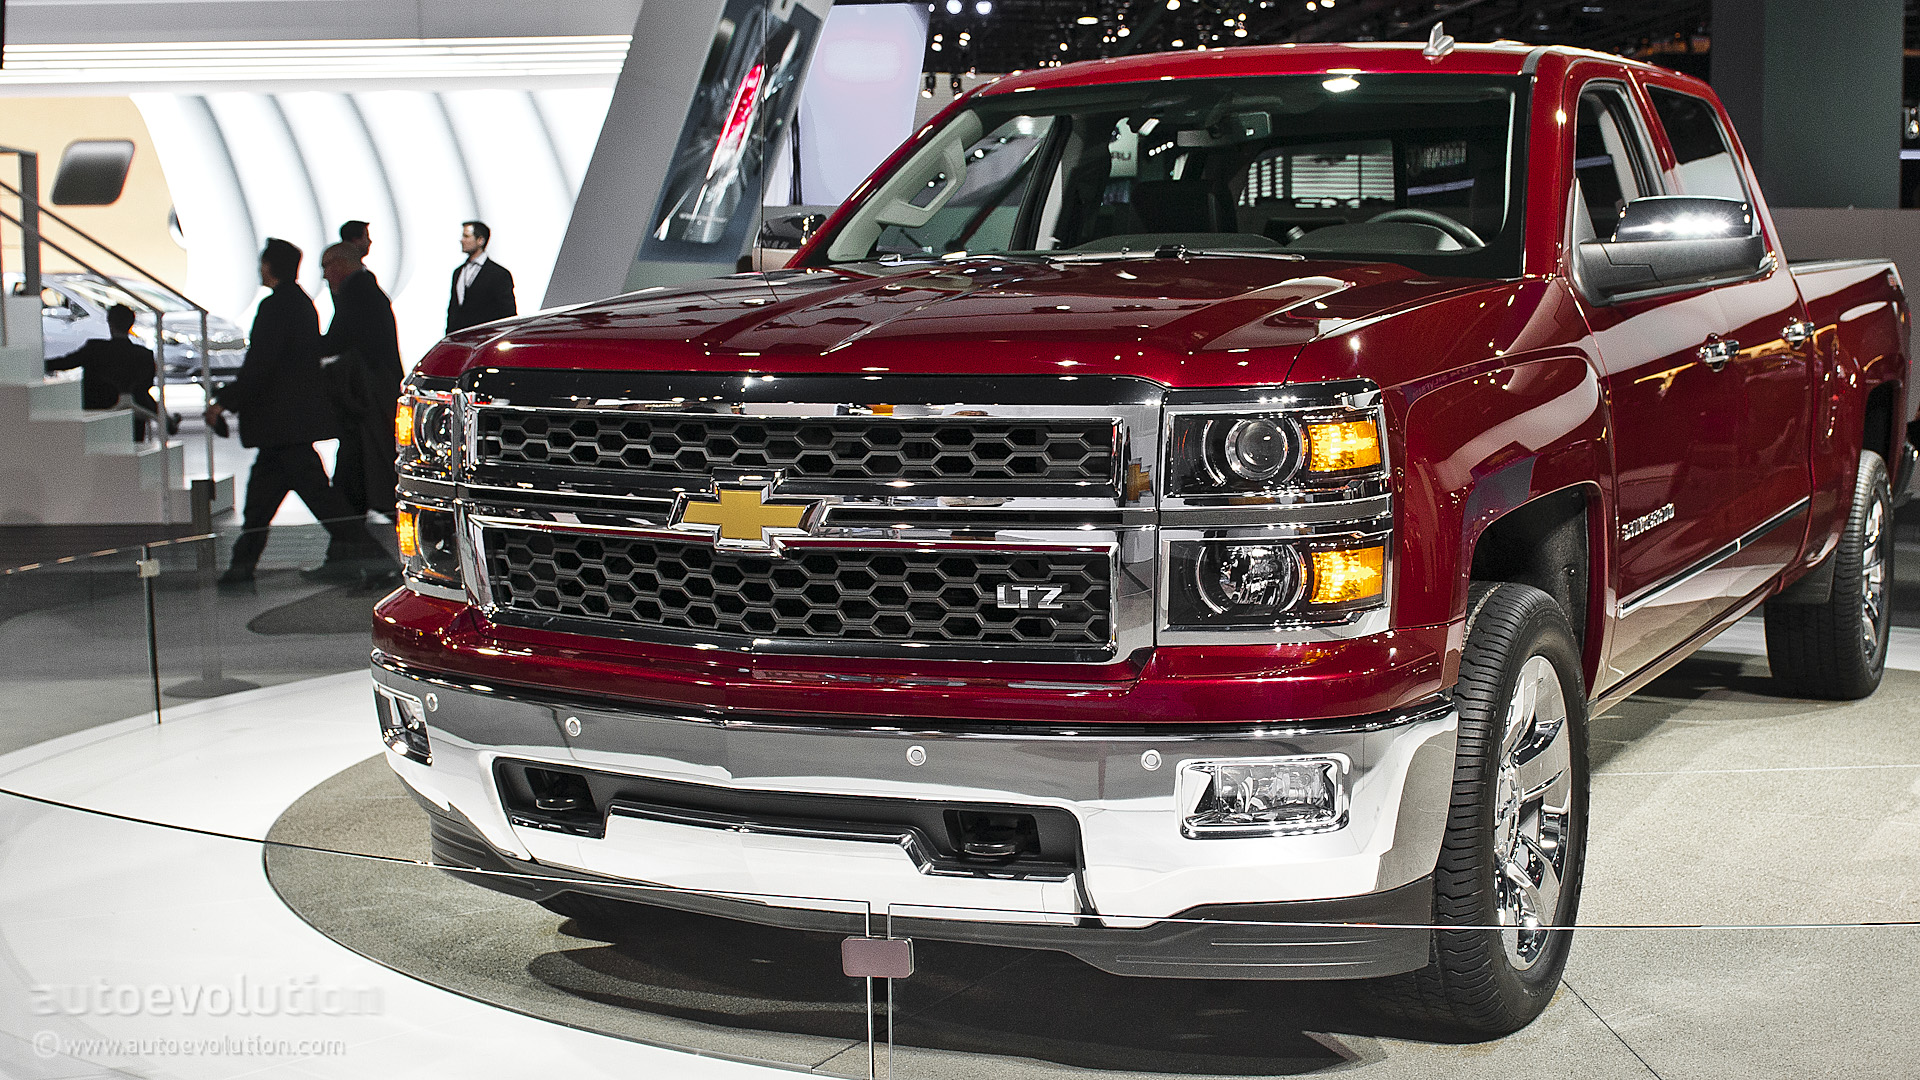 2013 naias all new 2014 chevy silverado live photos autoevolution. Black Bedroom Furniture Sets. Home Design Ideas